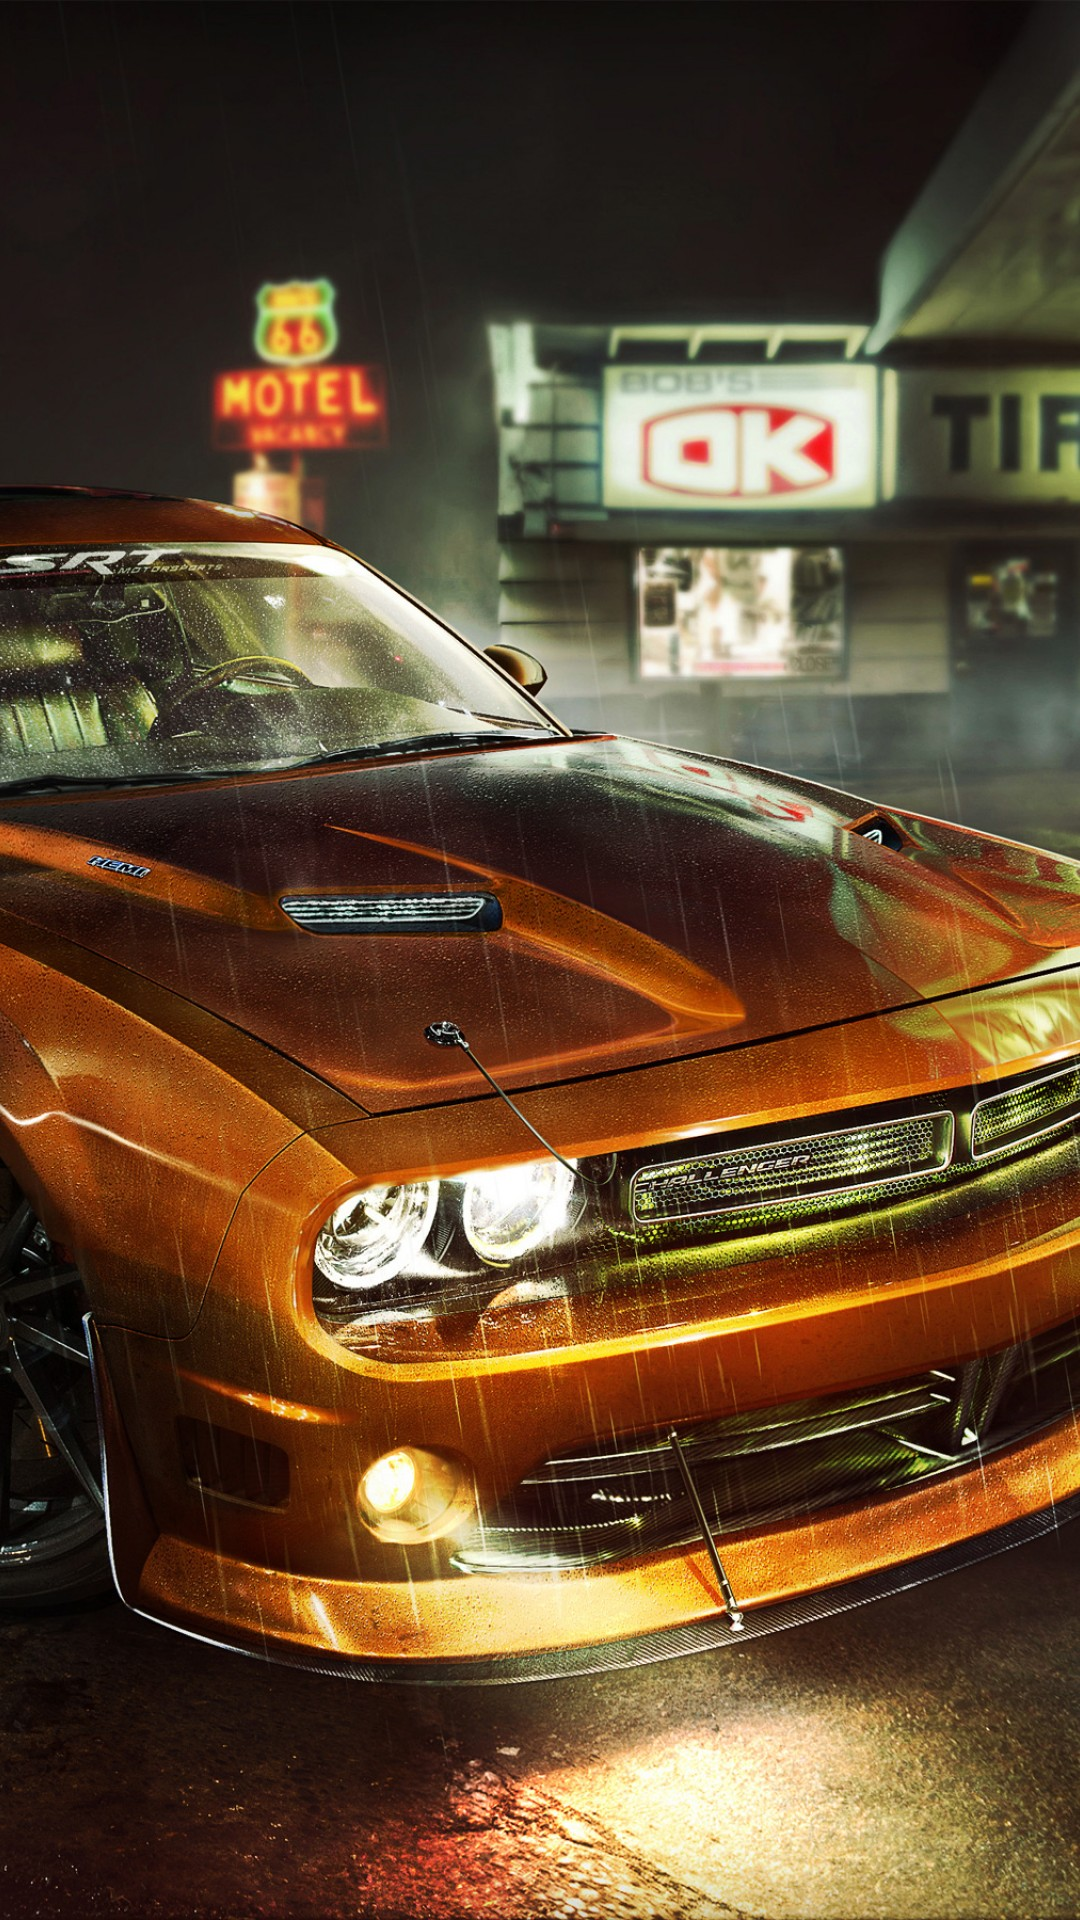 Dodge Challenger Rt Car Hd Wallpaper For Desktop And Mobiles